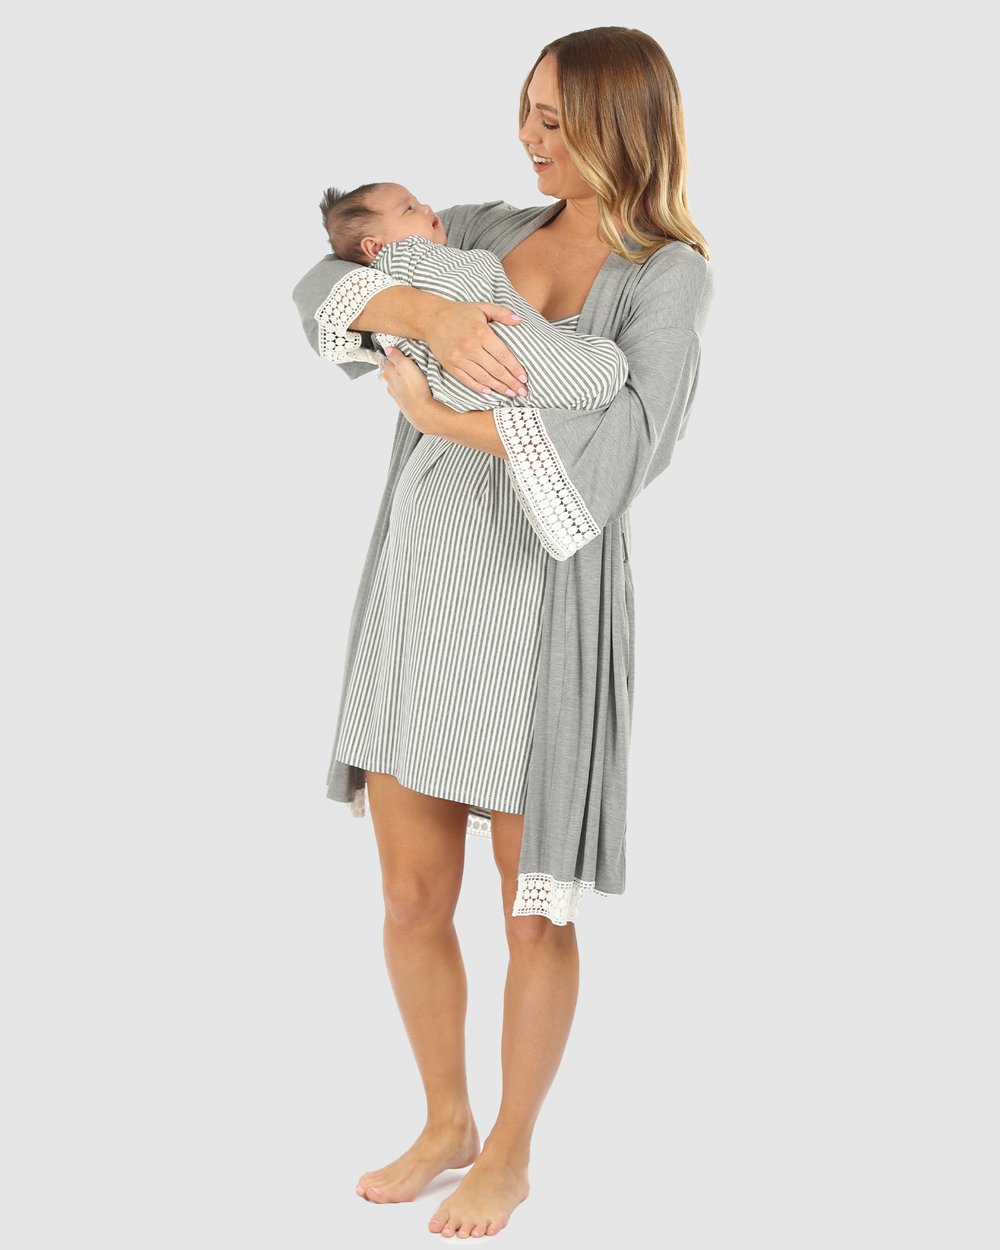 83c27d8221d 3 Piece Hospital Pack - Nursing Dress + Lace Robe + Baby Wrap Set by Angel  Maternity Online